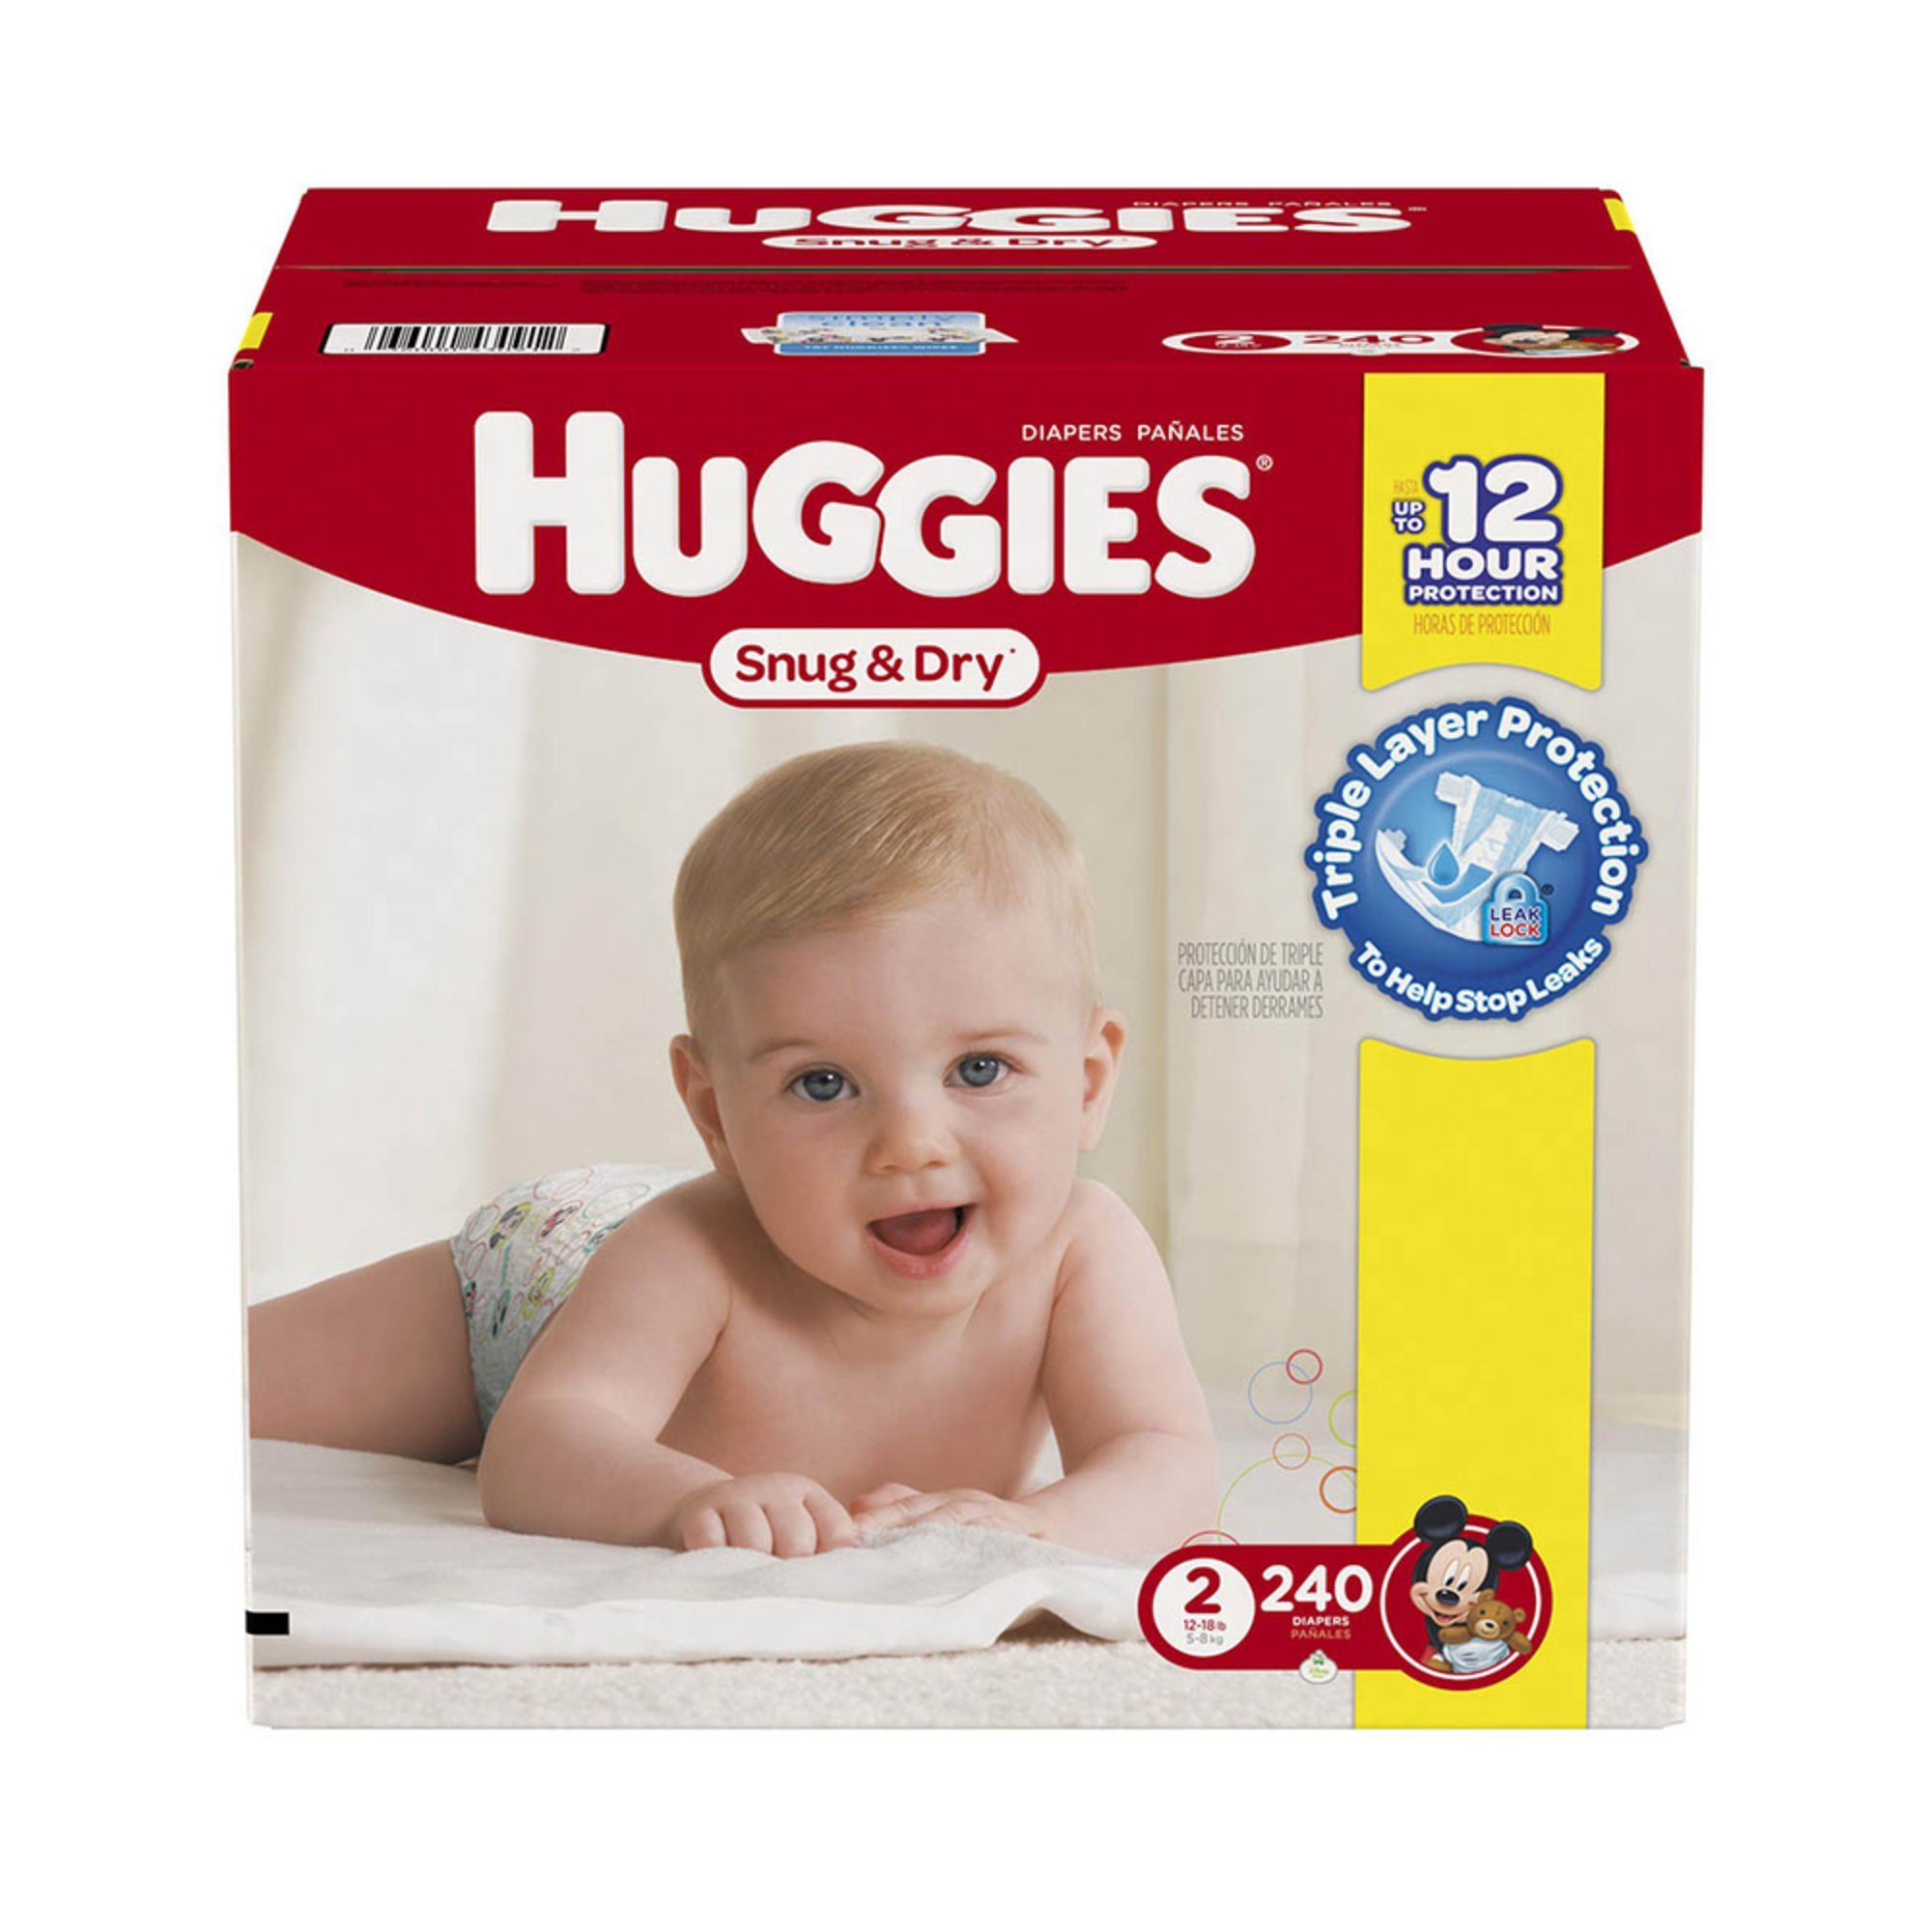 Check out which online shop has the best price for HUGGIES LITTLE MOVERS Diapers, Size 5 (27+ lb.), 66 Ct., GIGA JR PACK (Packaging May Vary), Baby Diapers for Active Babies in the South Africa. Compare prices for hundreds of Diapers hassle-free and save money.